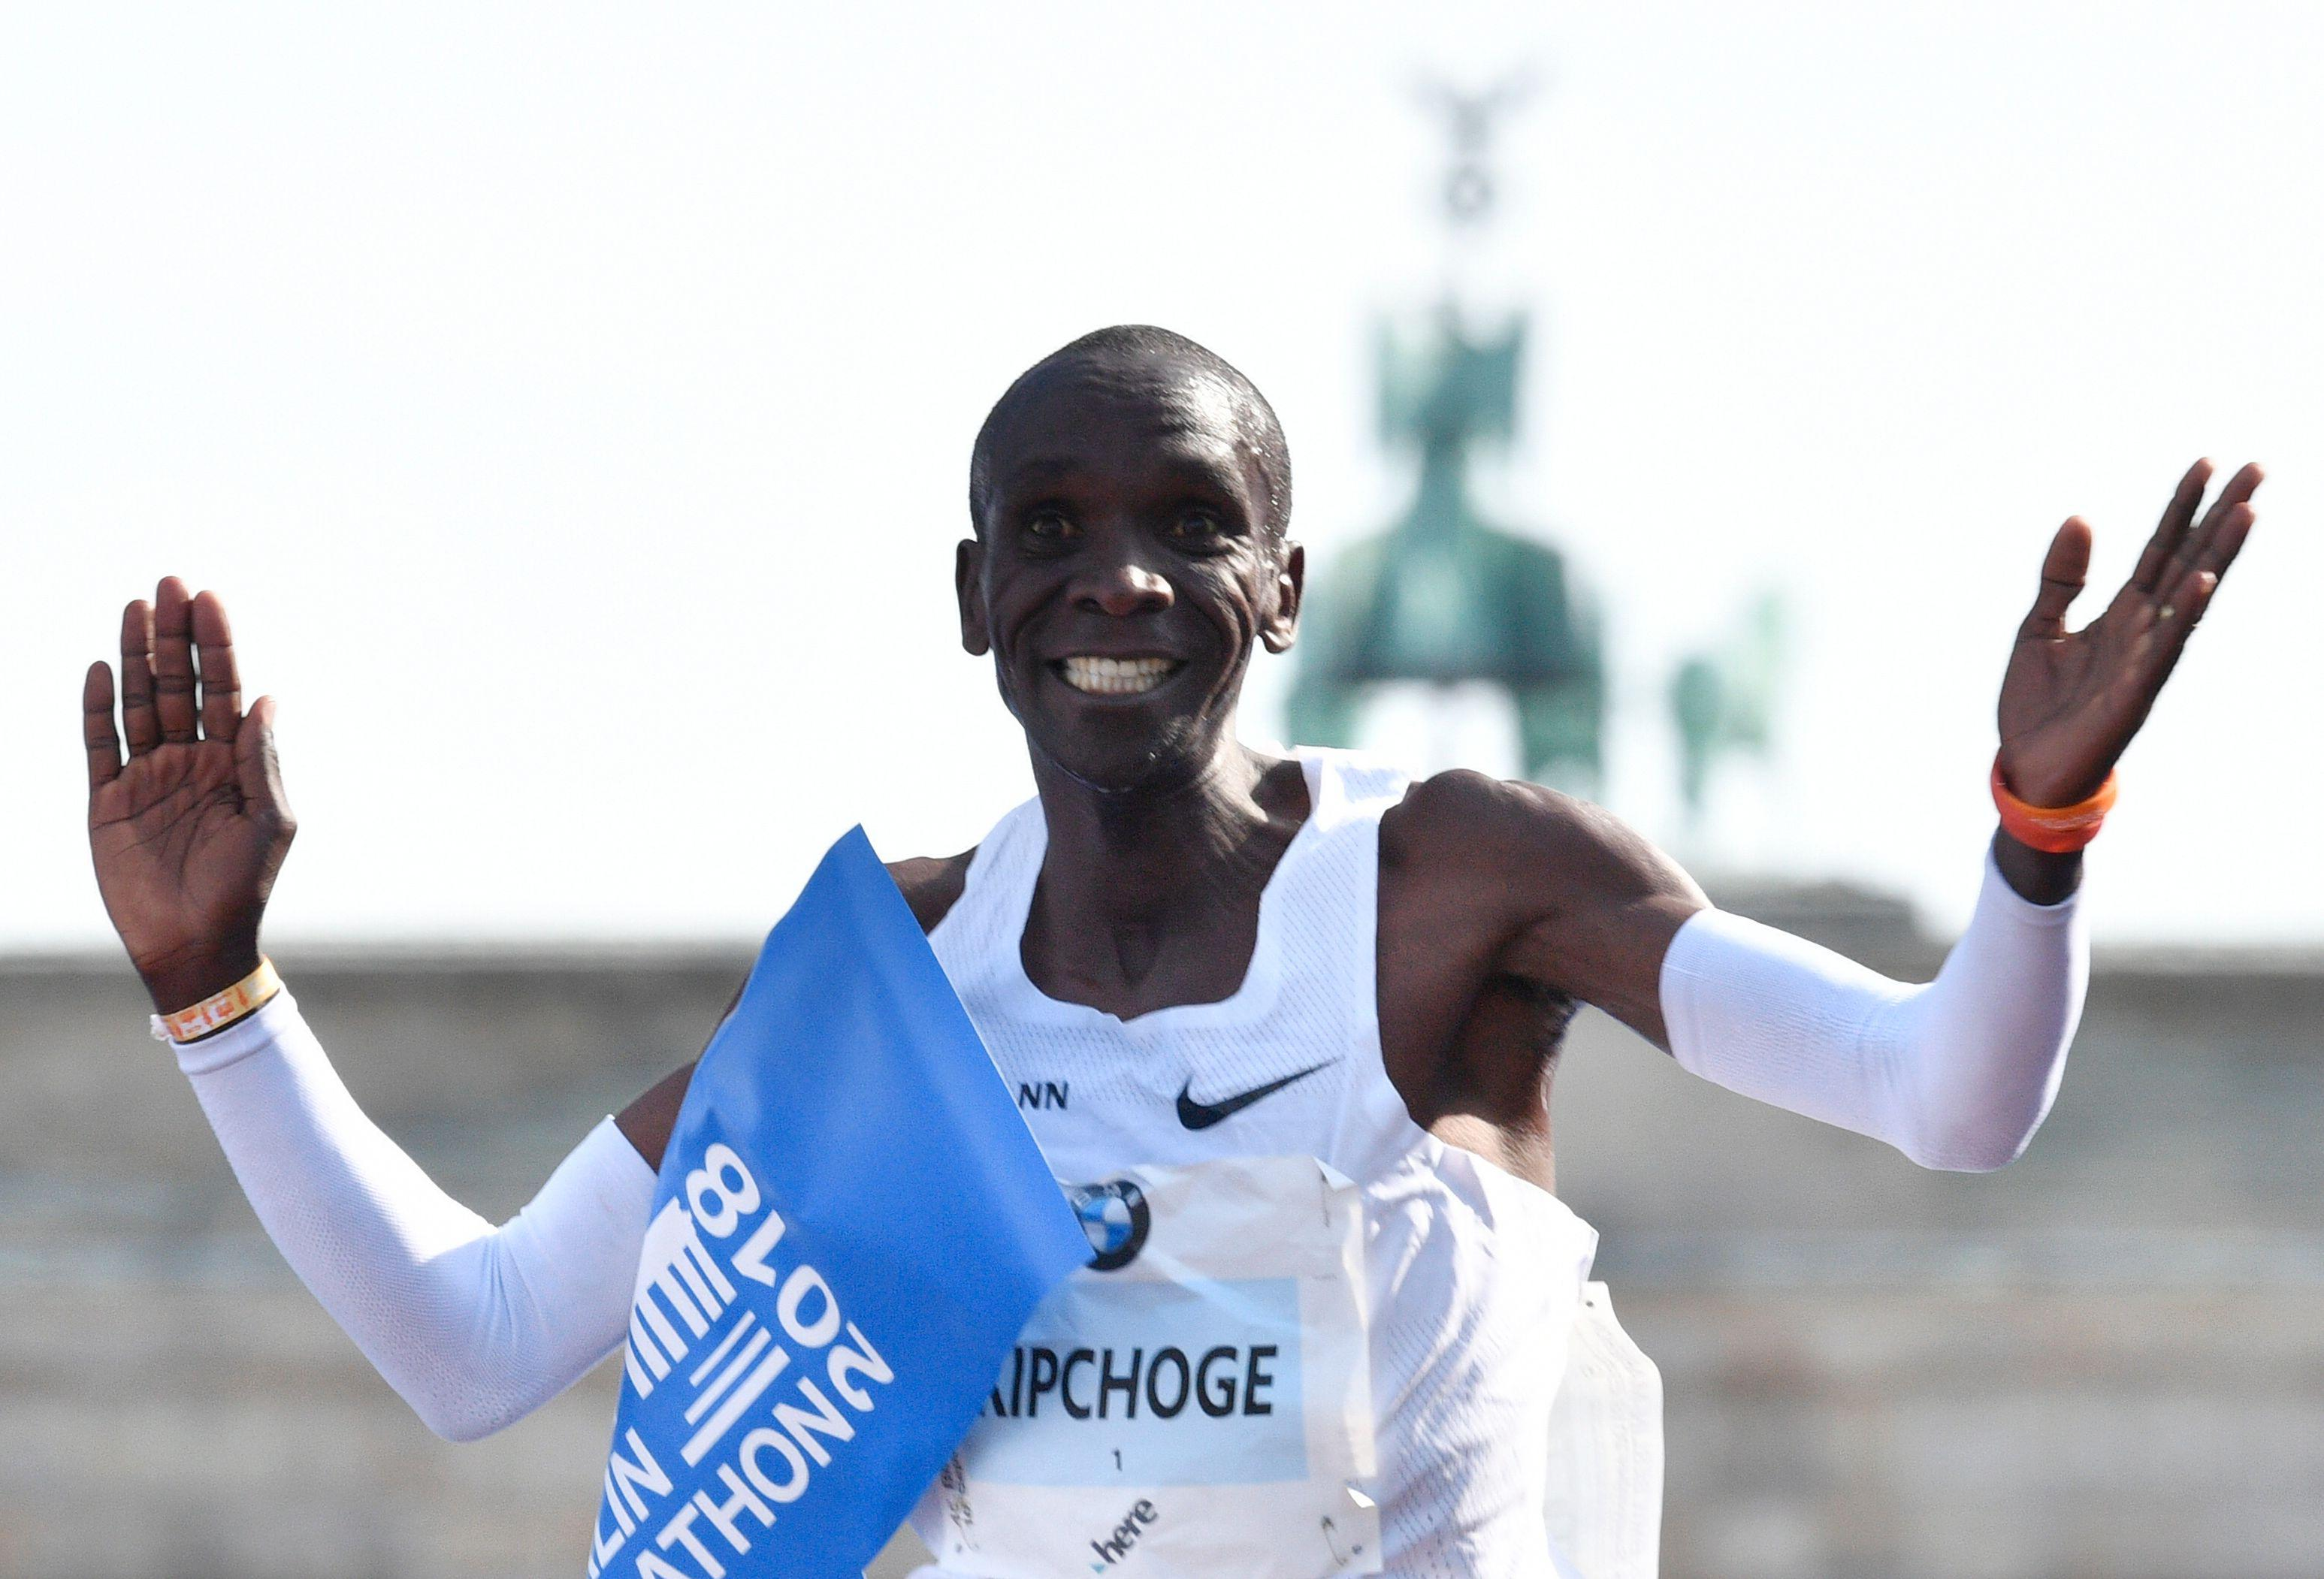 Kenya's Eliud Kipchoge crosses the finish line to win the Berlin Marathon setting a new world record with 2h01:39 on September 16, 2018 in Berlin. (Photo by John MACDOUGALL / AFP)        (Photo credit should read JOHN MACDOUGALL/AFP/Getty Images)